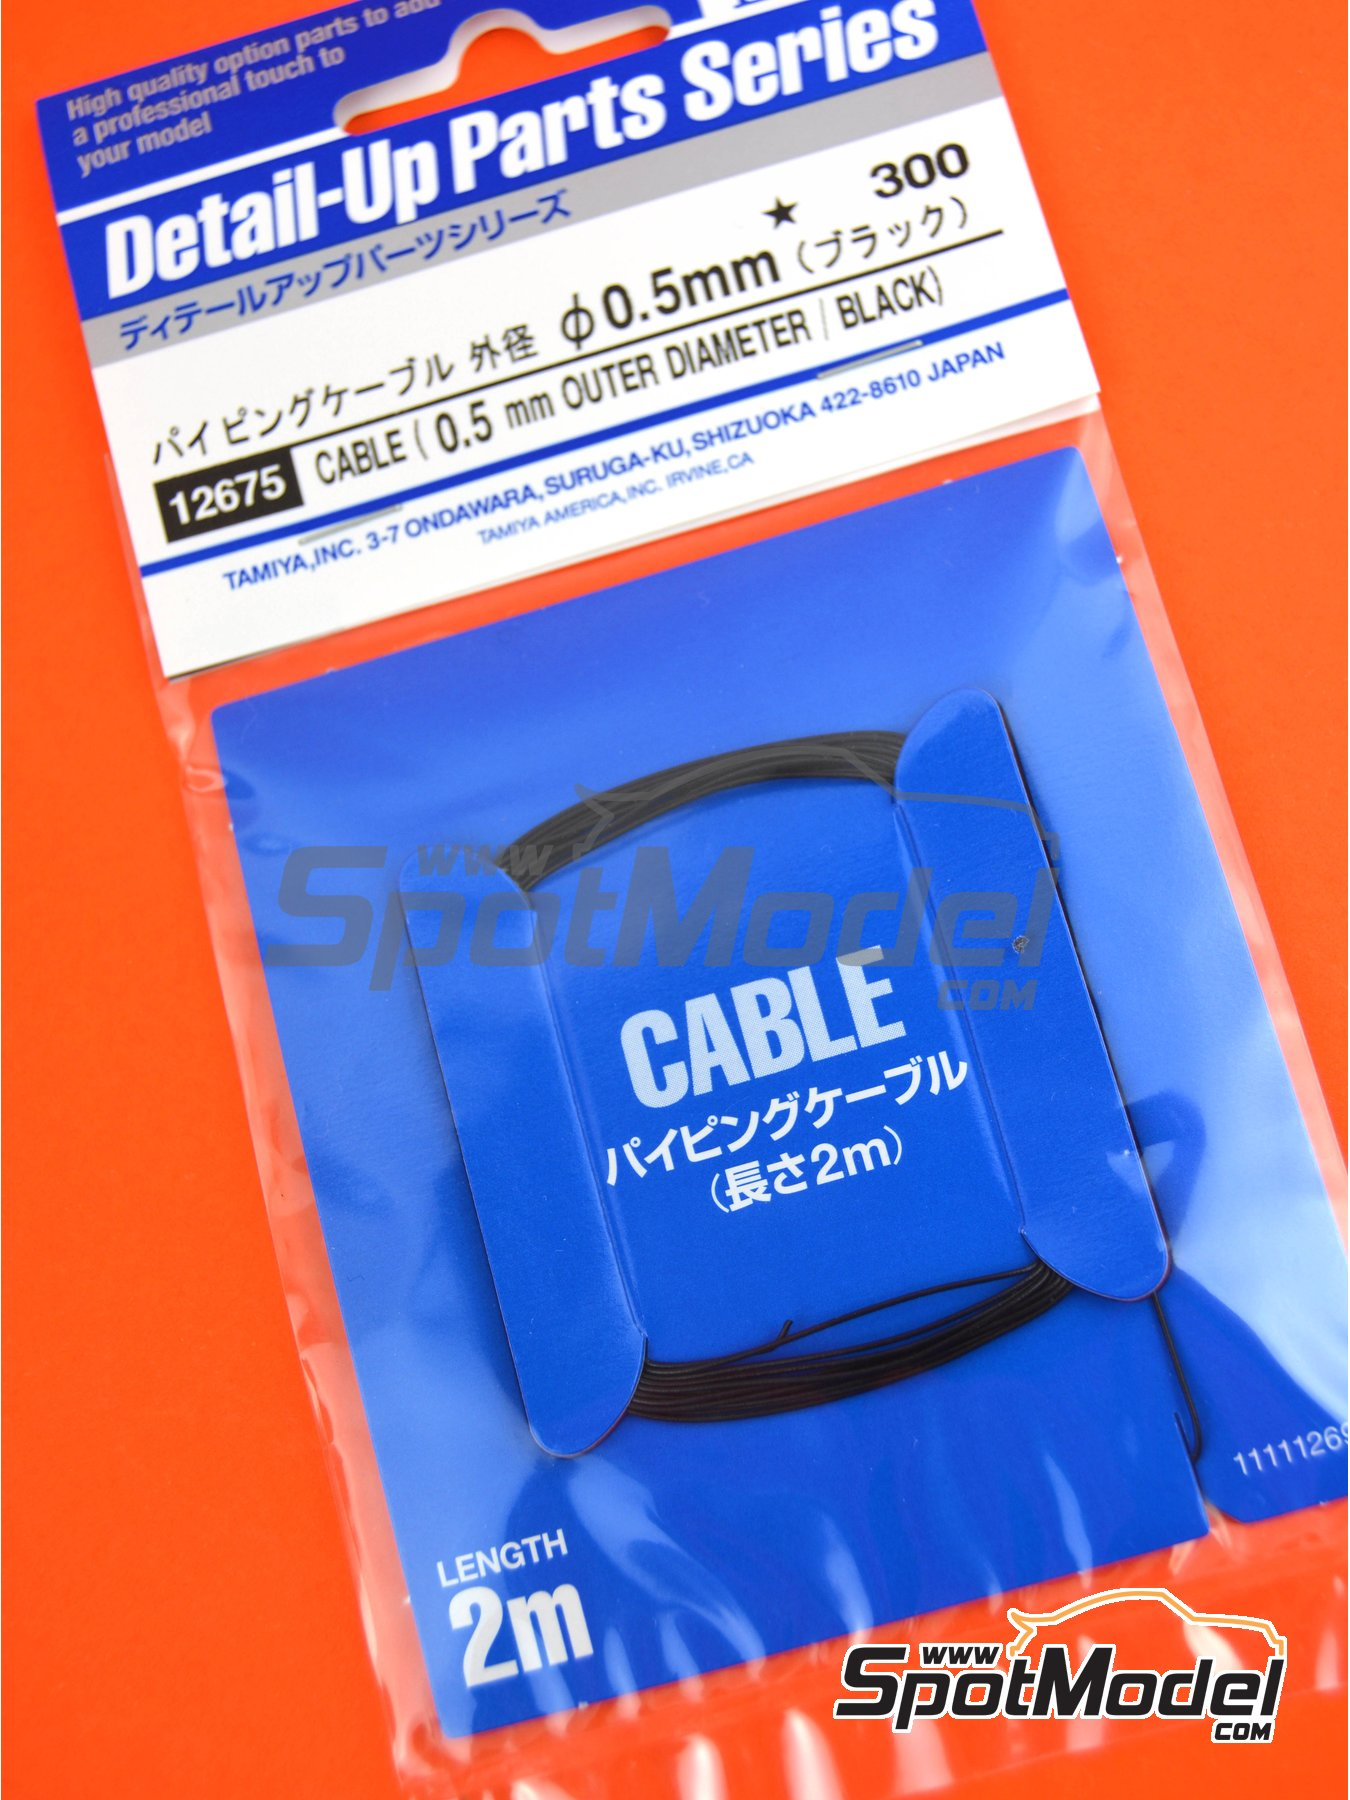 Black wire 0.5mm | Piping cord manufactured by Tamiya (ref. TAM12675) image